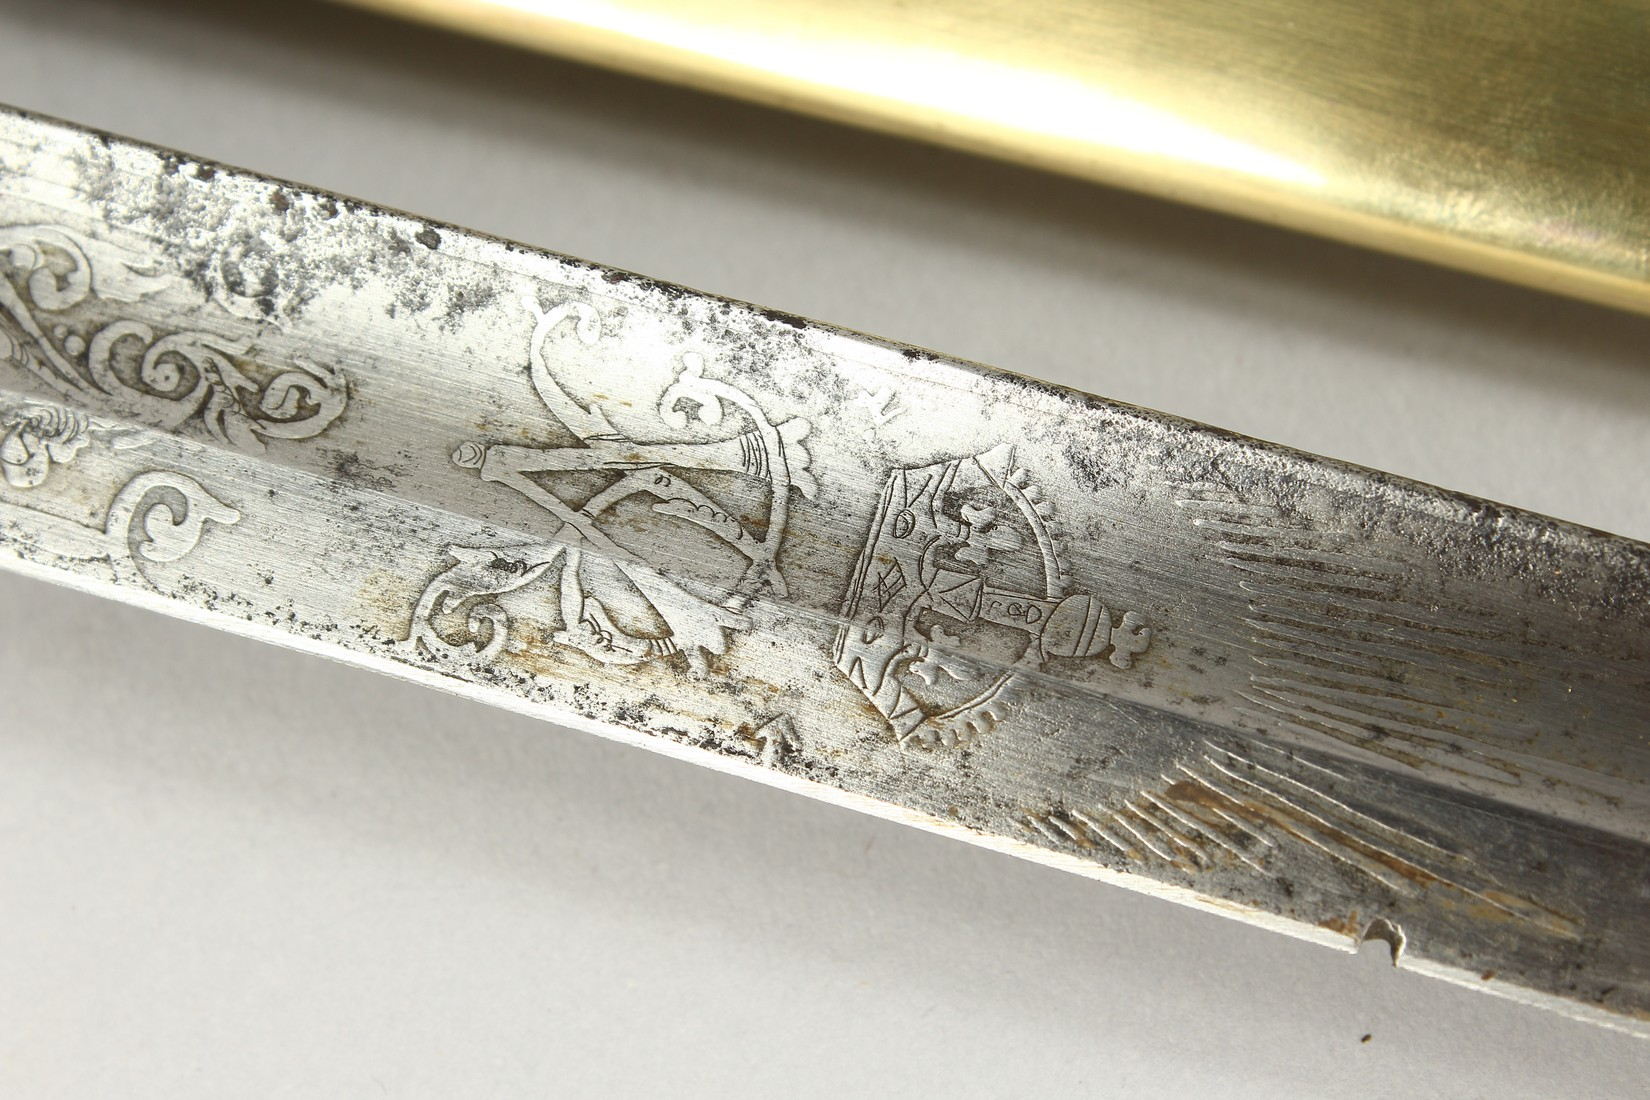 A GOOD VICTORIAN NAVAL SWORD with shagreen handle and engraved blade, V R & Crown inc., brown - Image 17 of 25